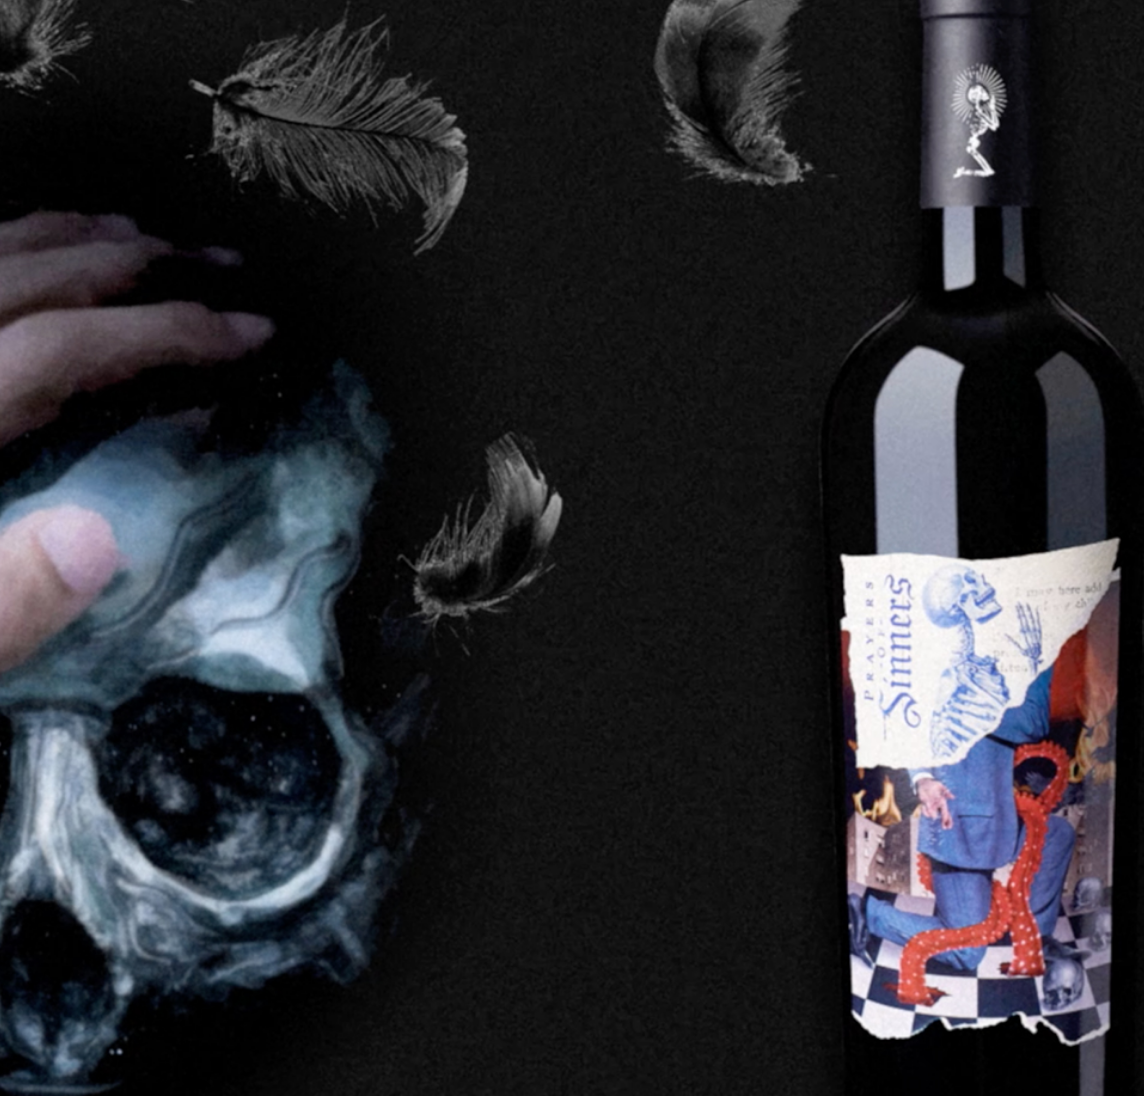 A red wine bottle with macabre illustrations